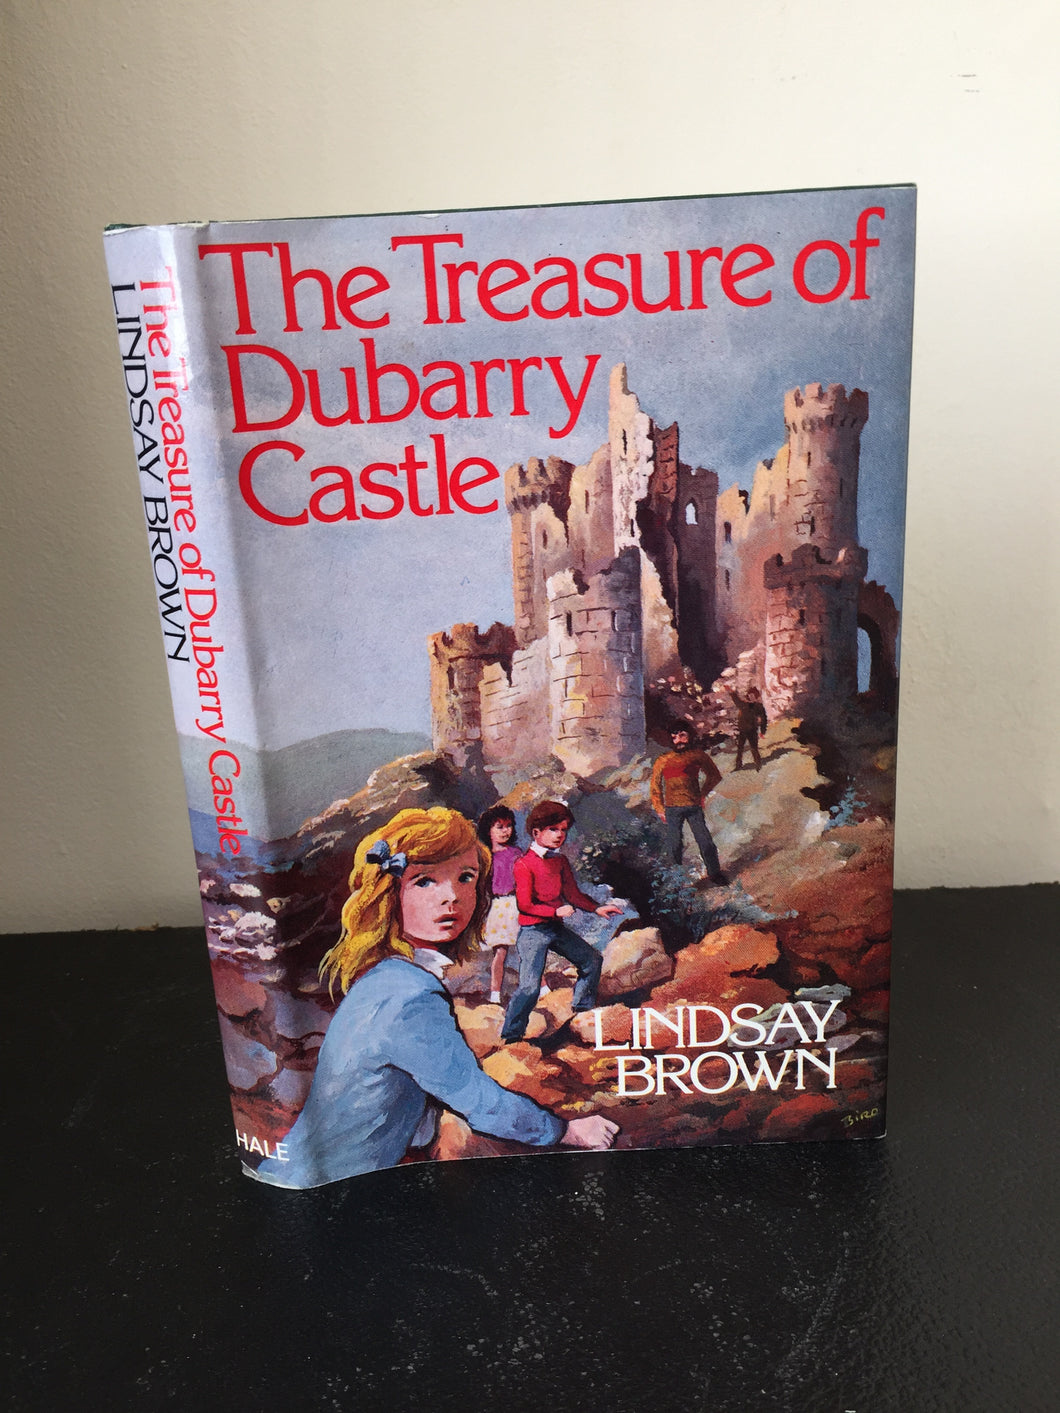 The Treasure of Dubarry Castle